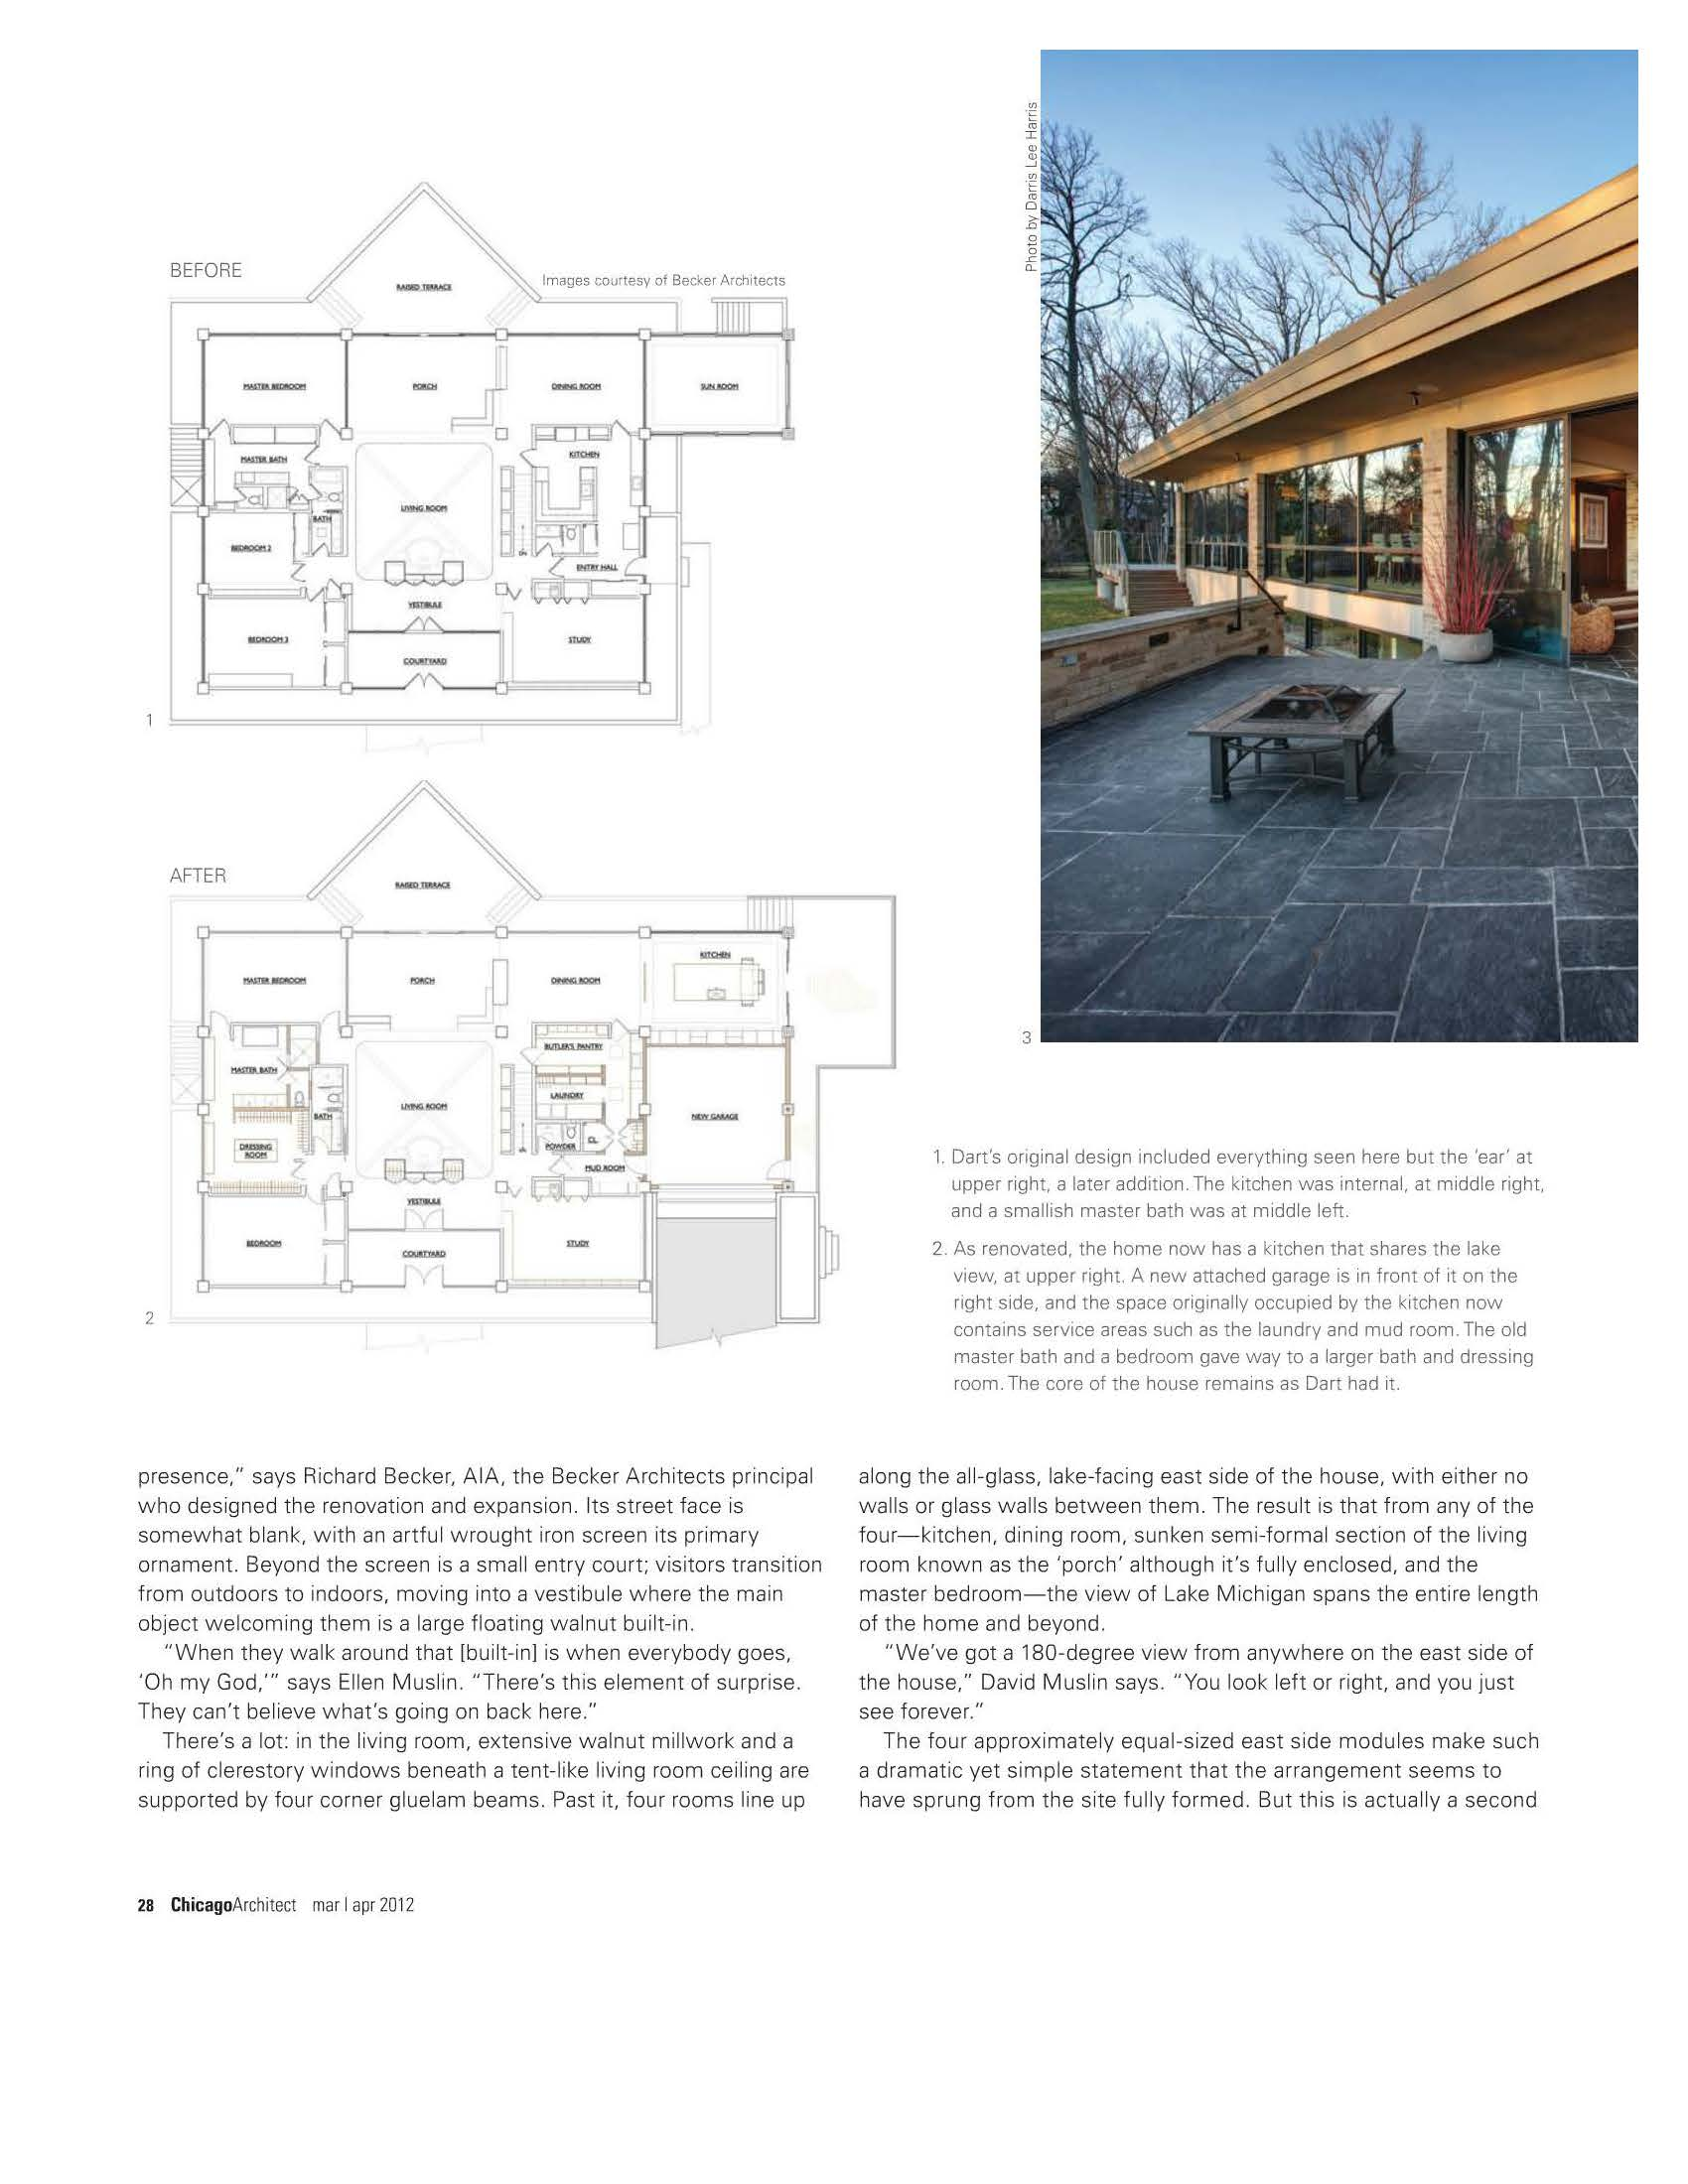 2012 Dart House Chicago Architect_Page_4.jpg